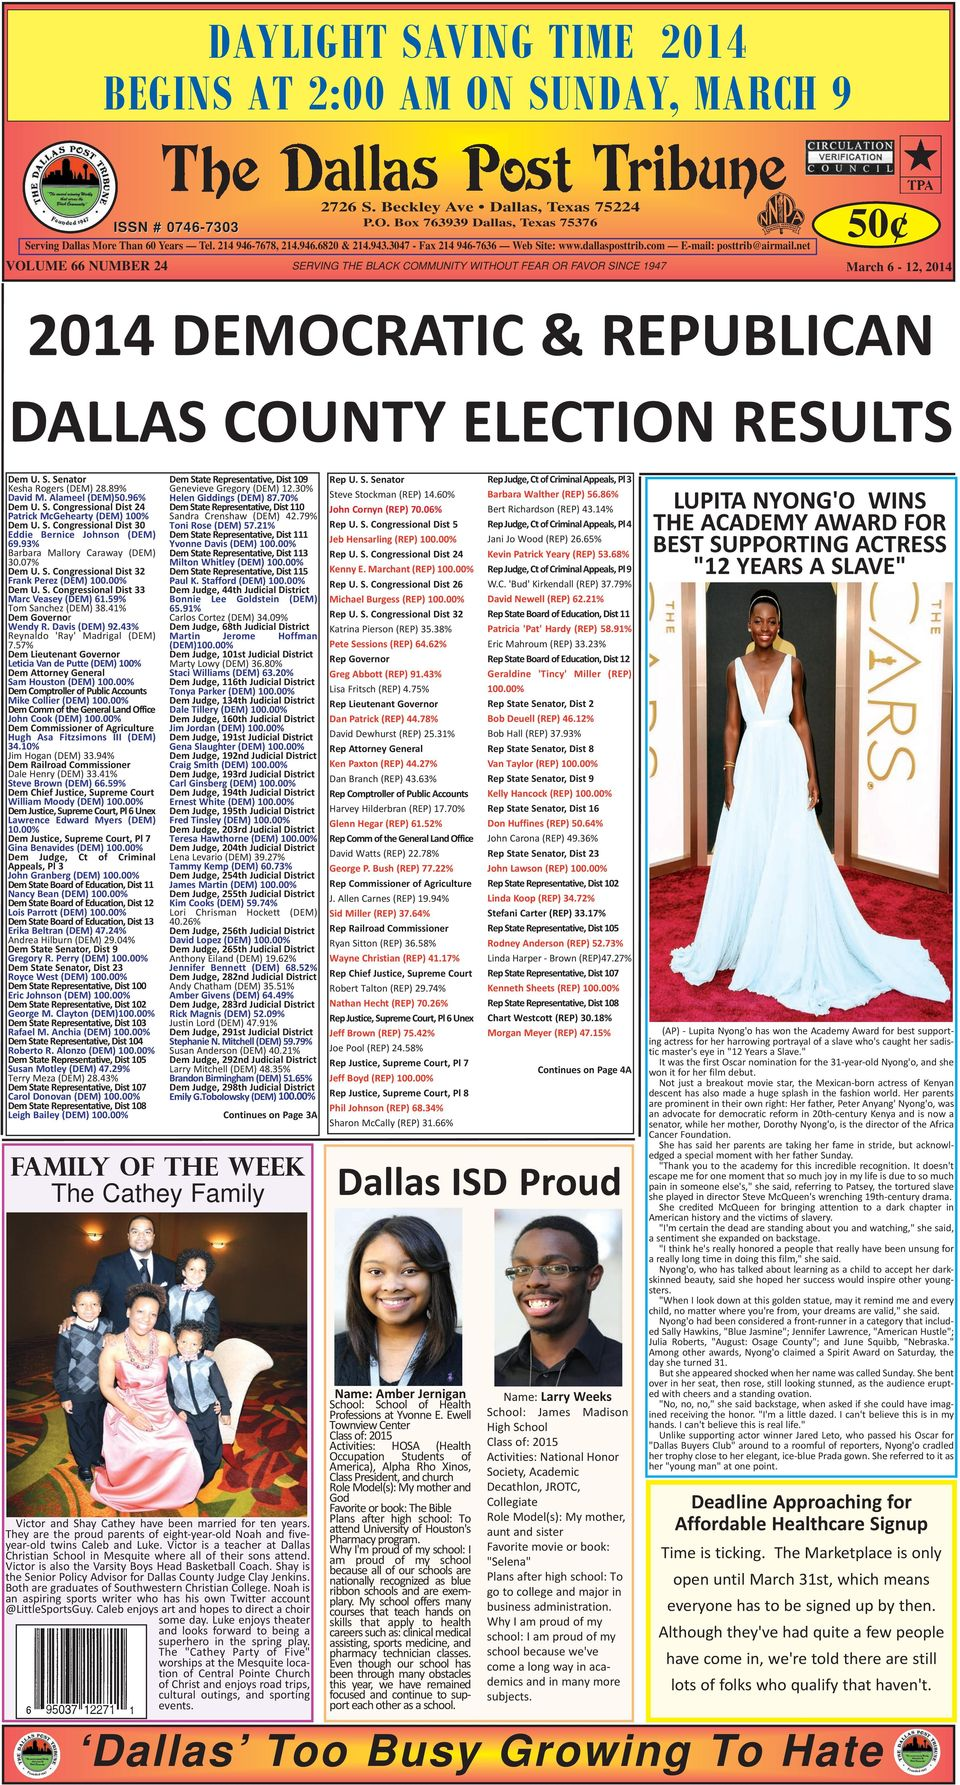 net VOLUME 66 NUMBER 24 SERVING THE BLACK COMMUNITY WITHOUT FEAR OR FAVOR SINCE 1947 March 6-12, 2014 2014 DEMOCRATIC & REPUBLICAN DALLAS COUNTY ELECTION RESULTS Dem U. S. Senator Kesha Rogers (DEM) 28.